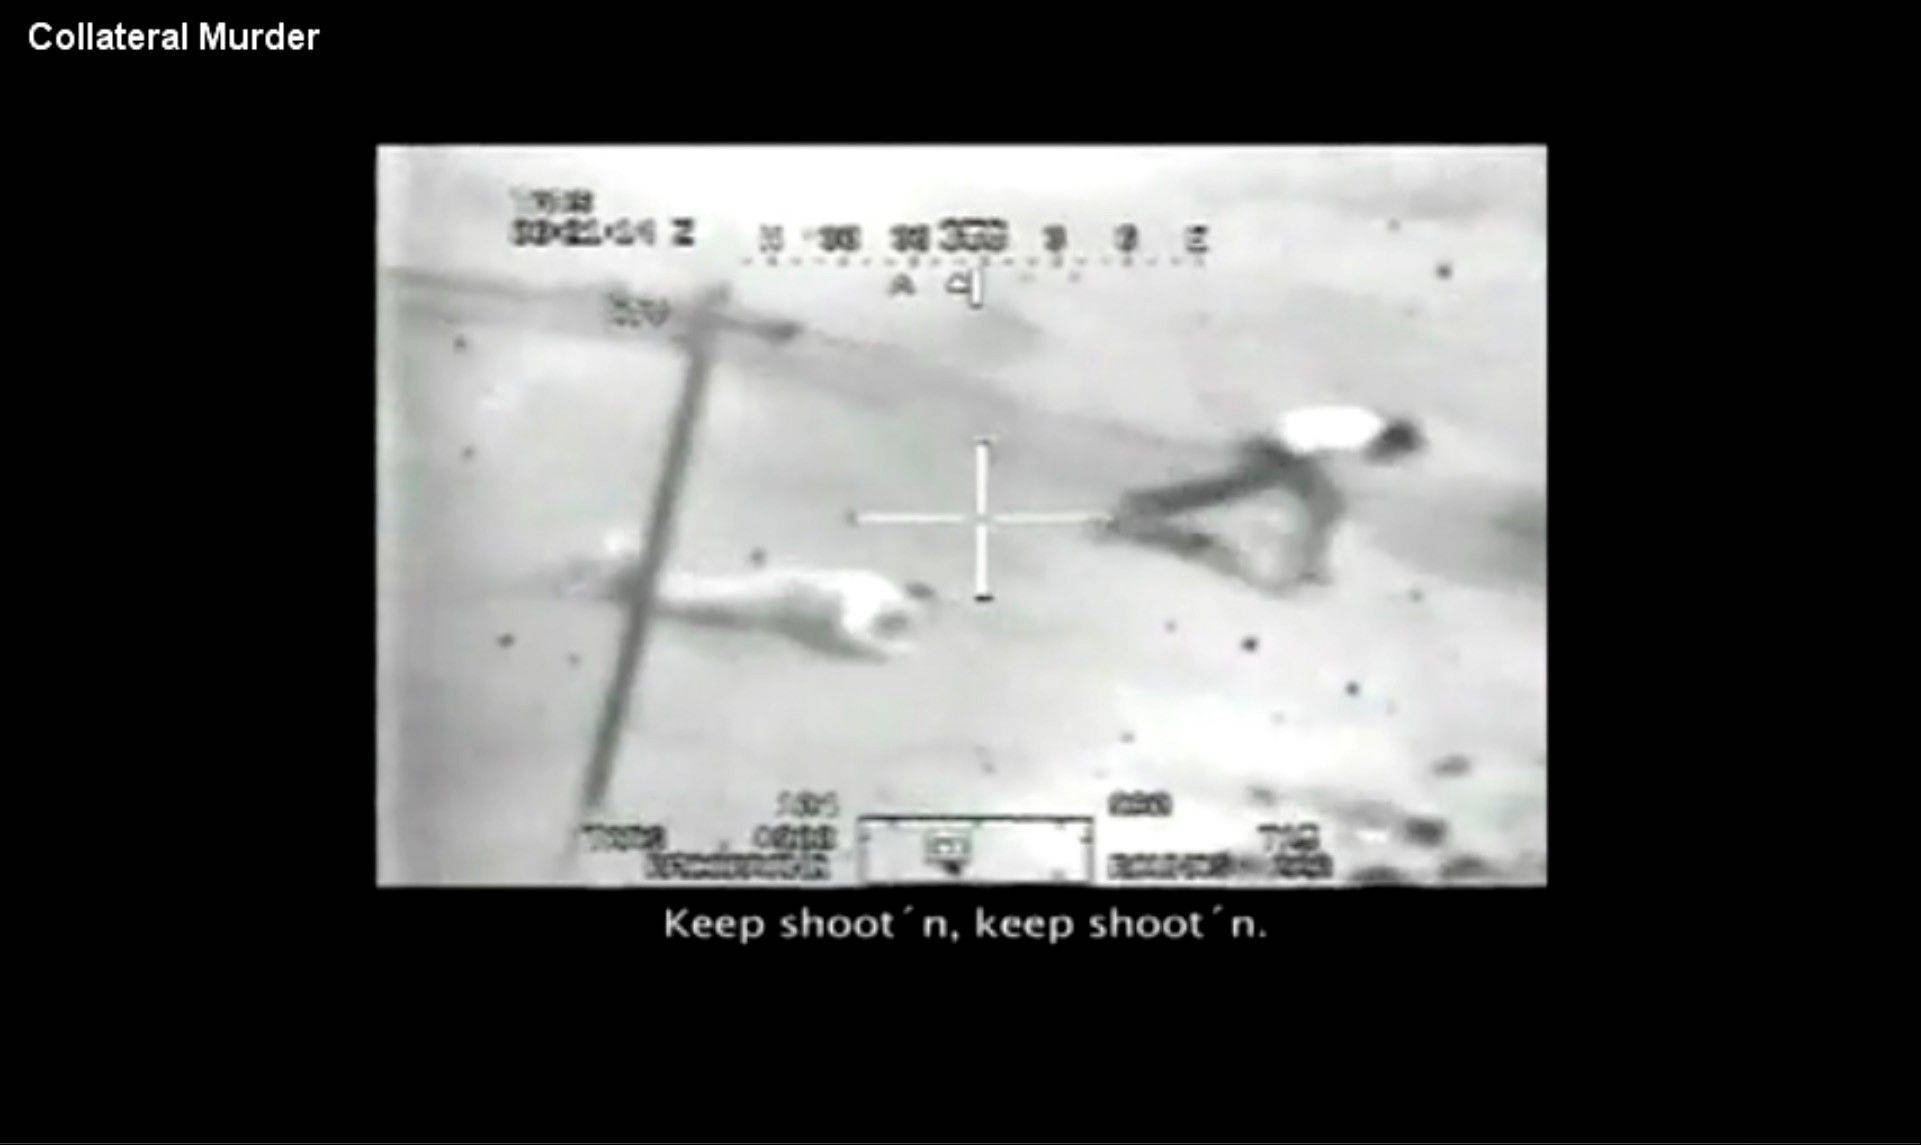 FILE - This image made from a video from a U.S. Army Apache helicopter gun sight, posted at Wikileaks.org and confirmed as authentic by a senior U.S. military official, shows two men in the streets of the New Baghdad district of eastern Baghdad after being fired upon by the helicopter on July 12, 2007. Among those killed in the attack was Reuters photographer Namir Noor-Eldeen, 22, and his driver Saeed Chmagh, 40. Two children also were wounded.